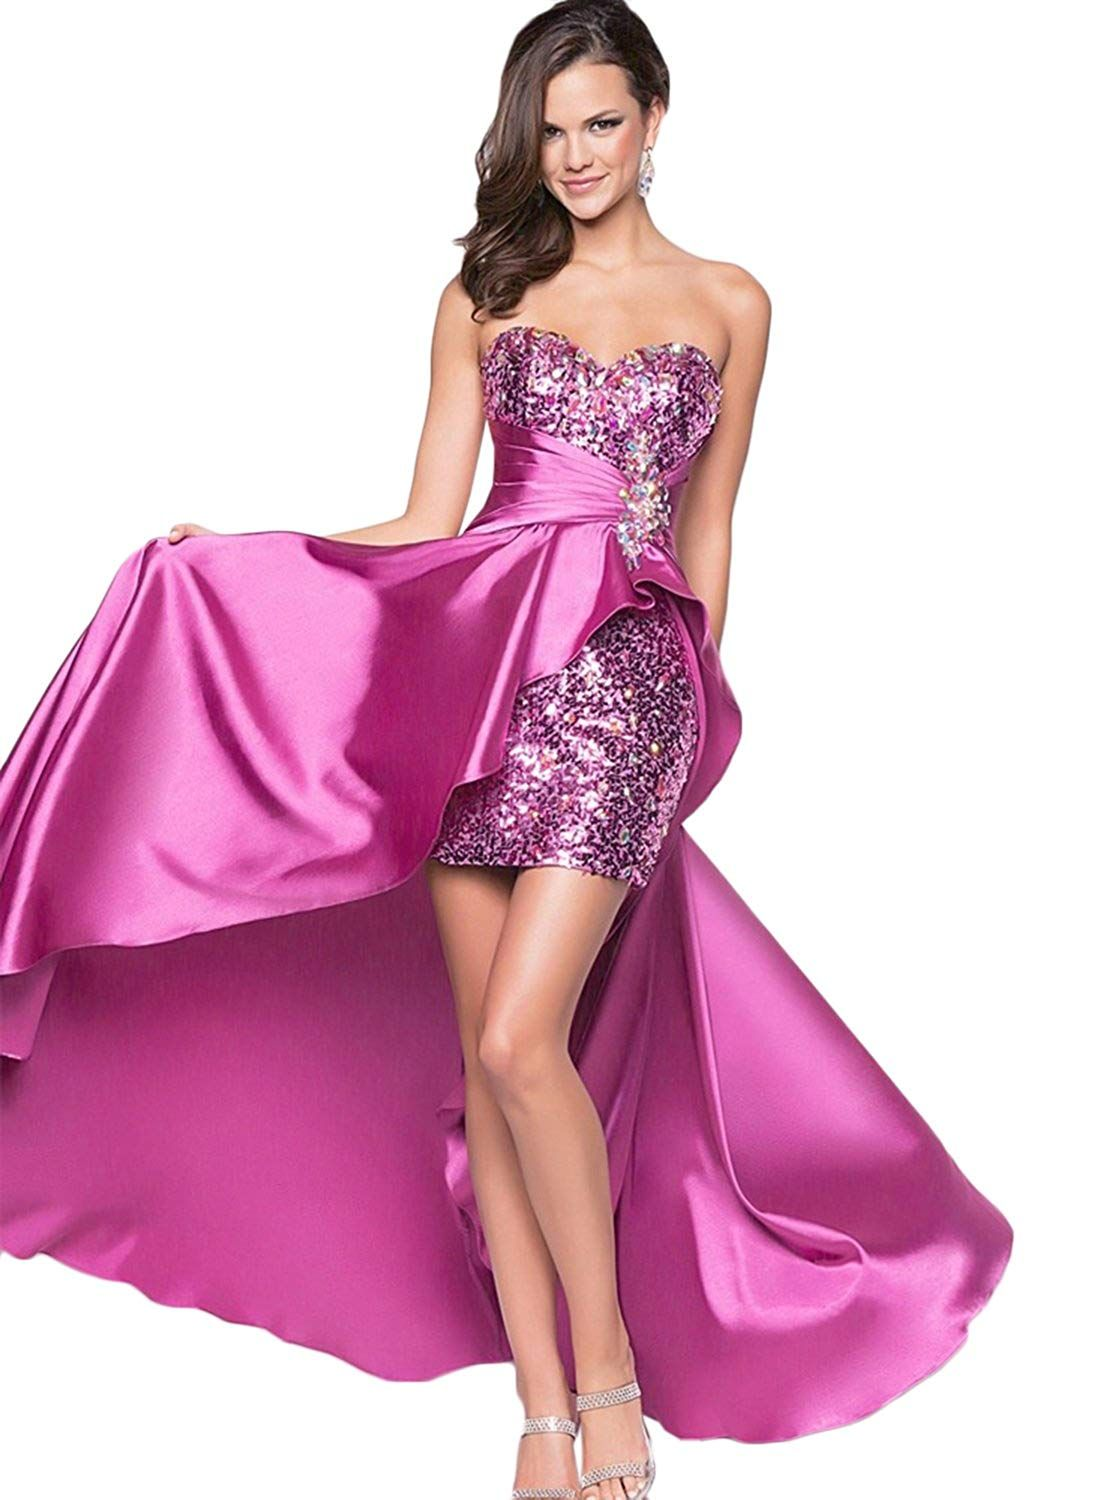 bbe72b609bf6 Azbro Women's Strapless High Low Sequin Prom Evening Bridesmaid Long Maxi  Dress *** To view further for this item, visit the image link.